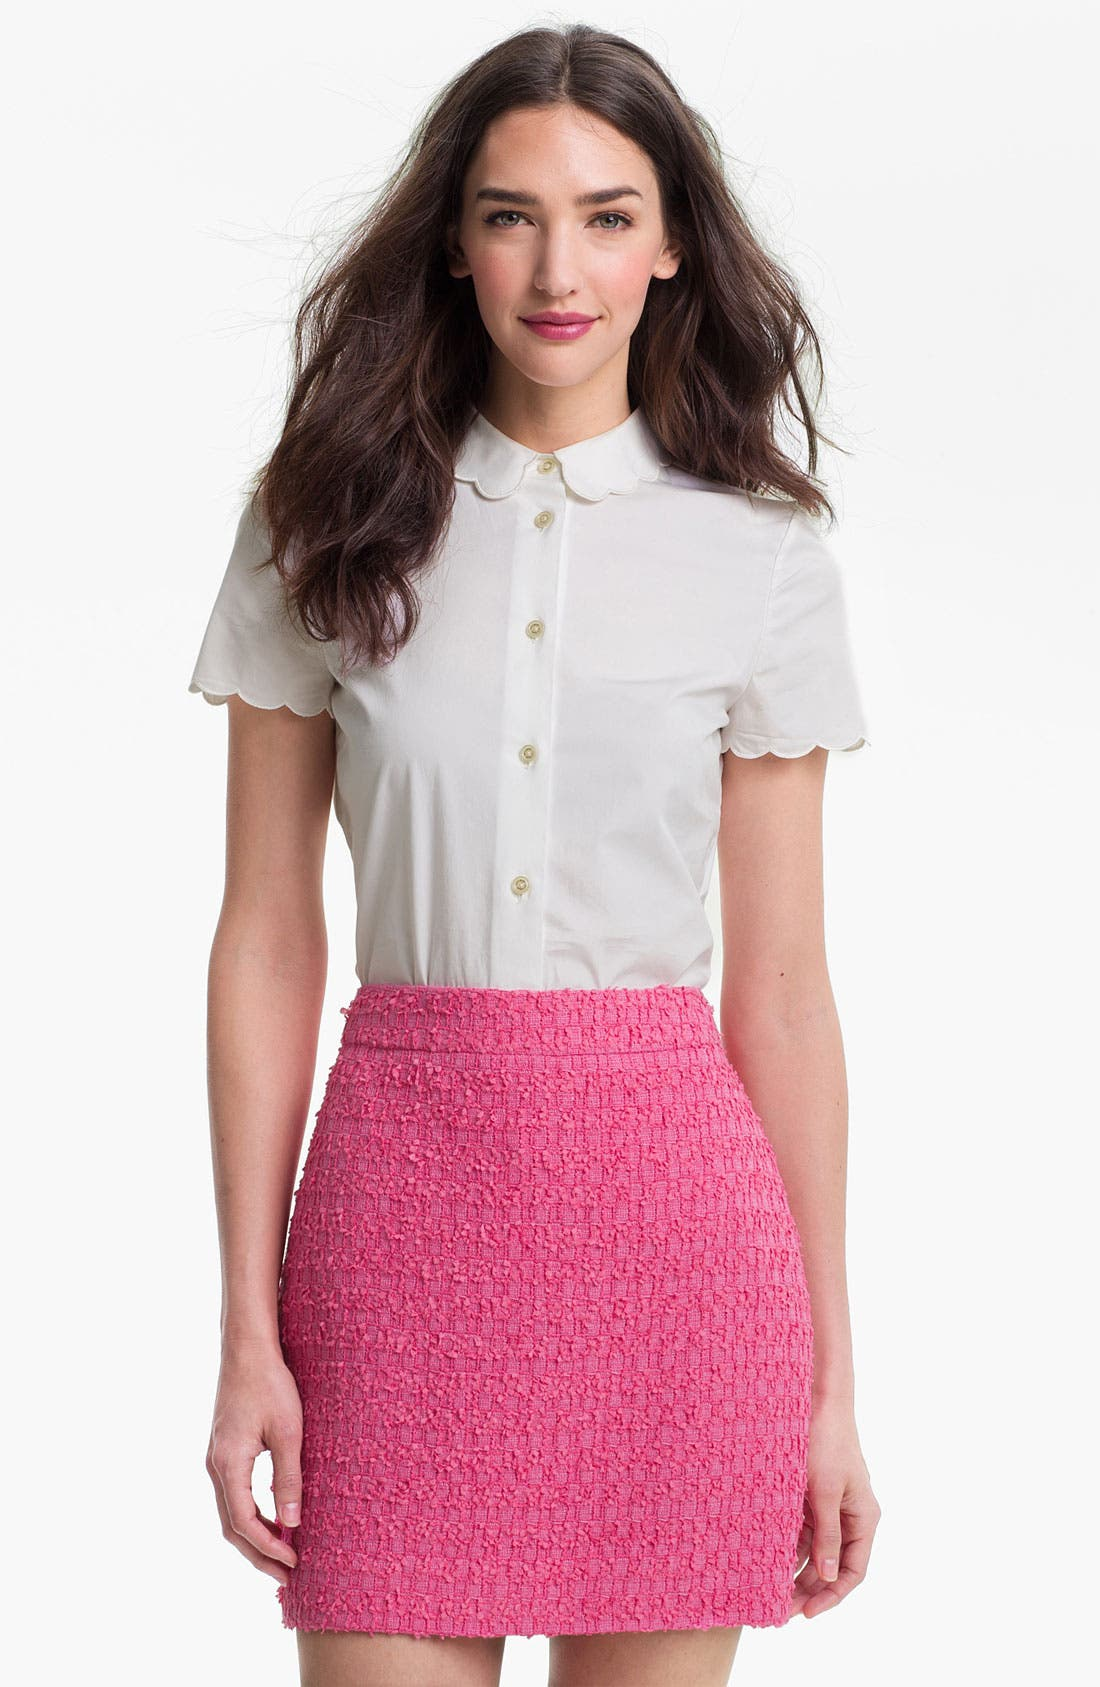 Main Image - kate spade new york 'helen' top